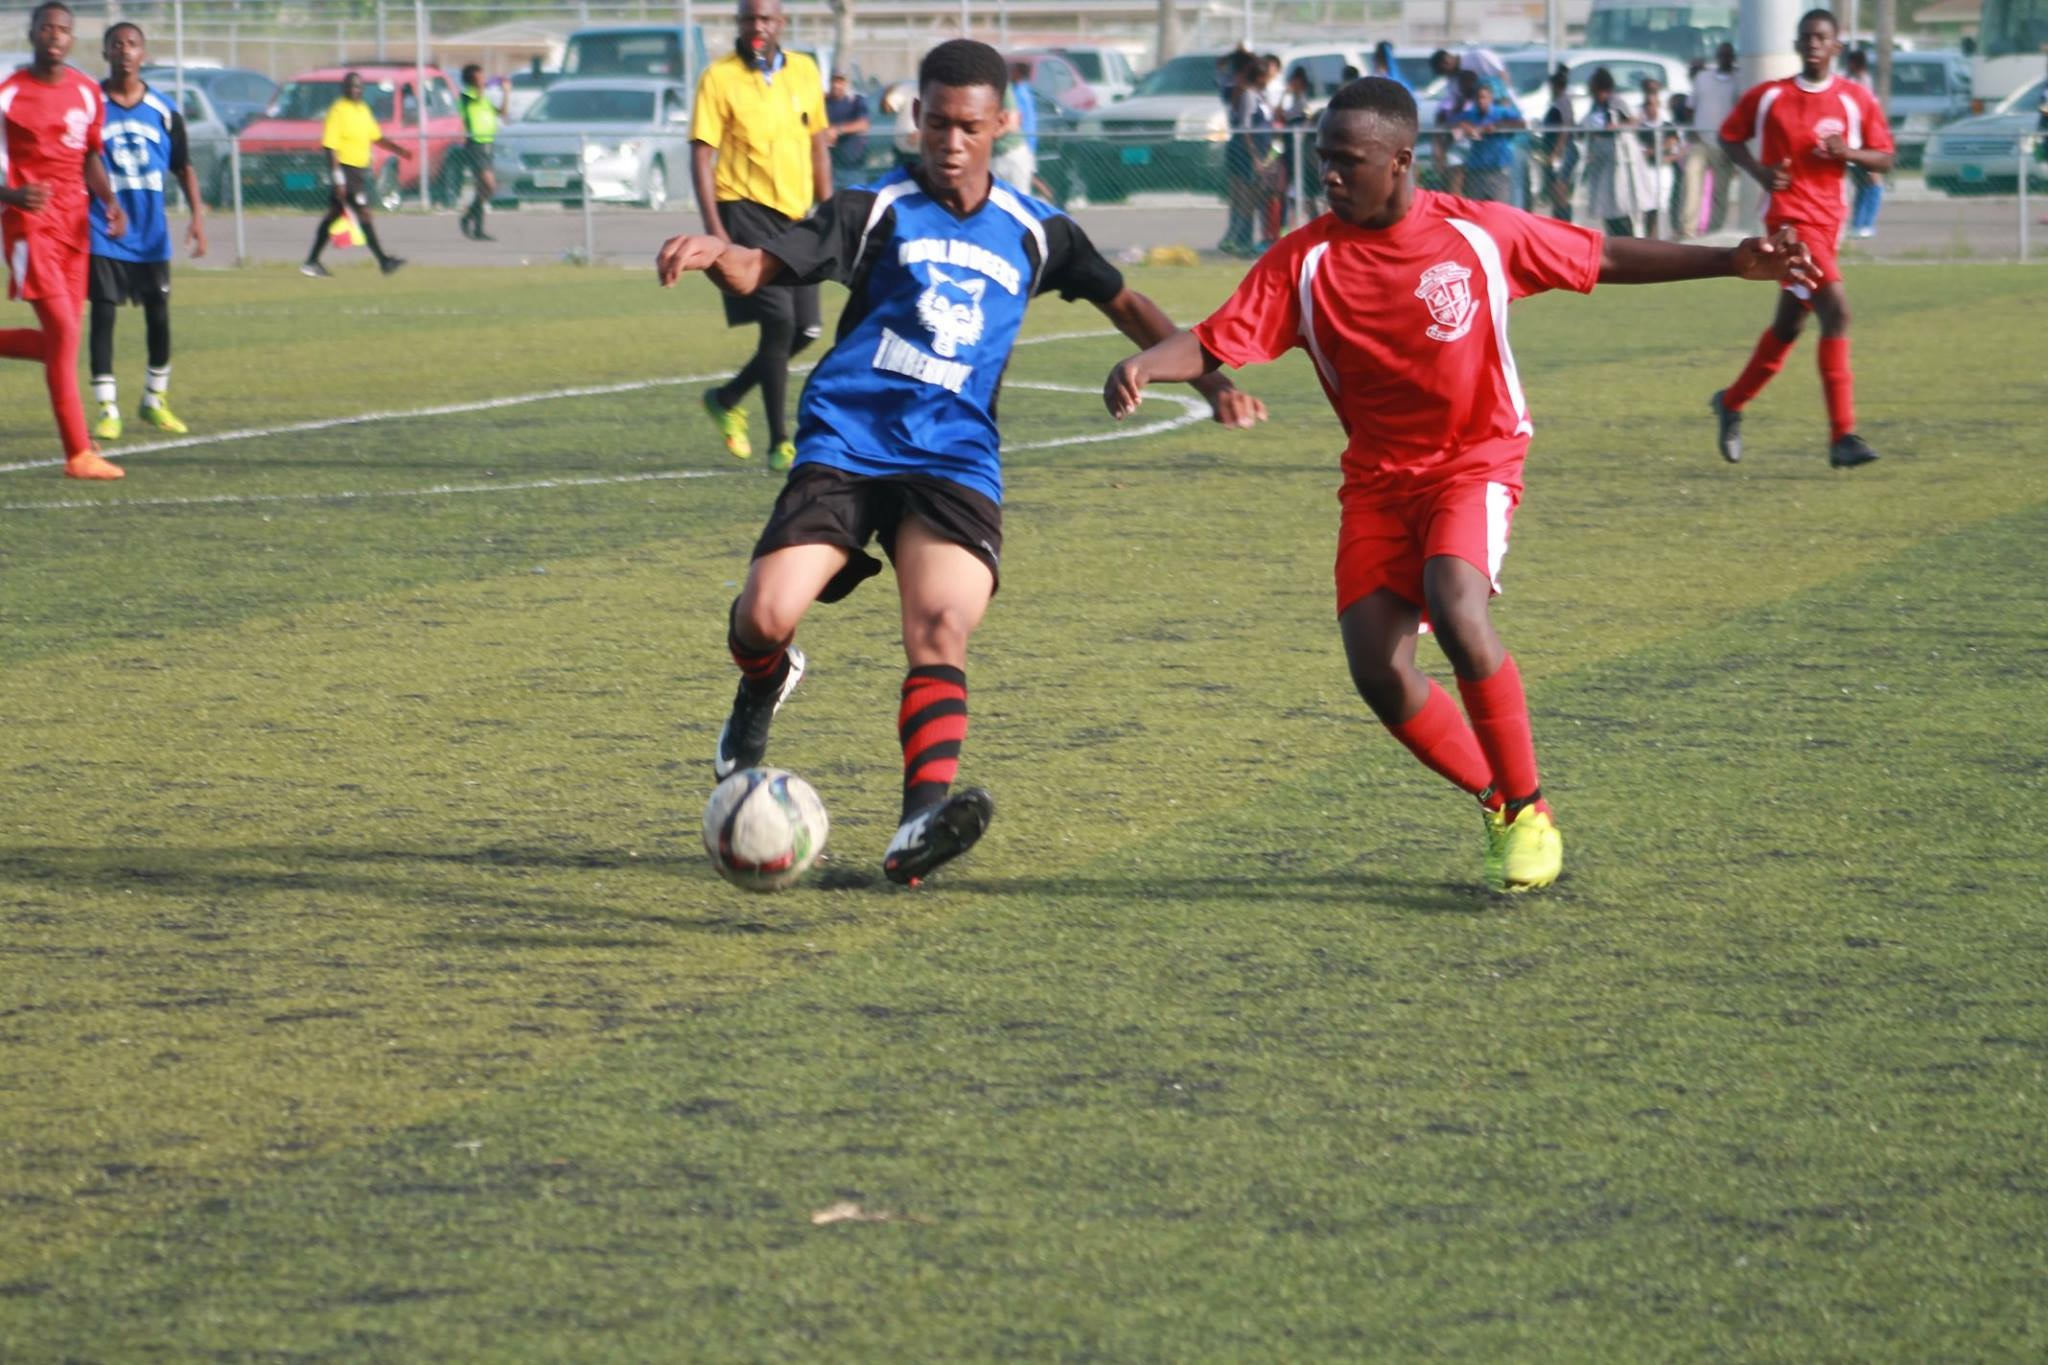 High School Soccer Nationals matchups set